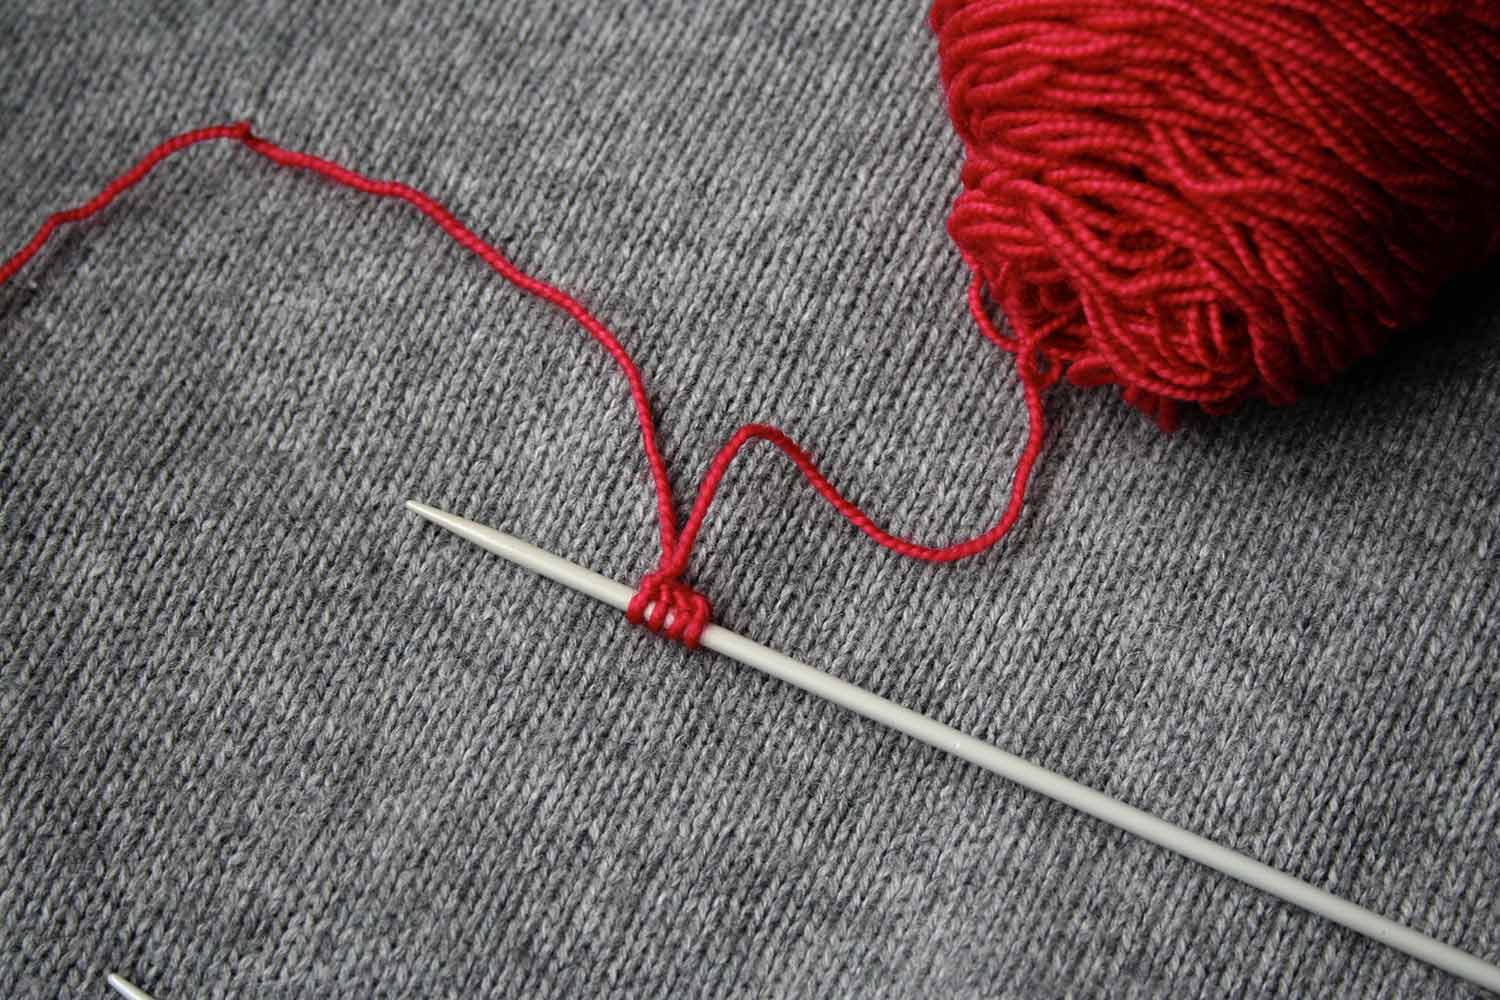 Double pointed needle resting on a knitted surface with four stitches cast on and a ball of red yarn.